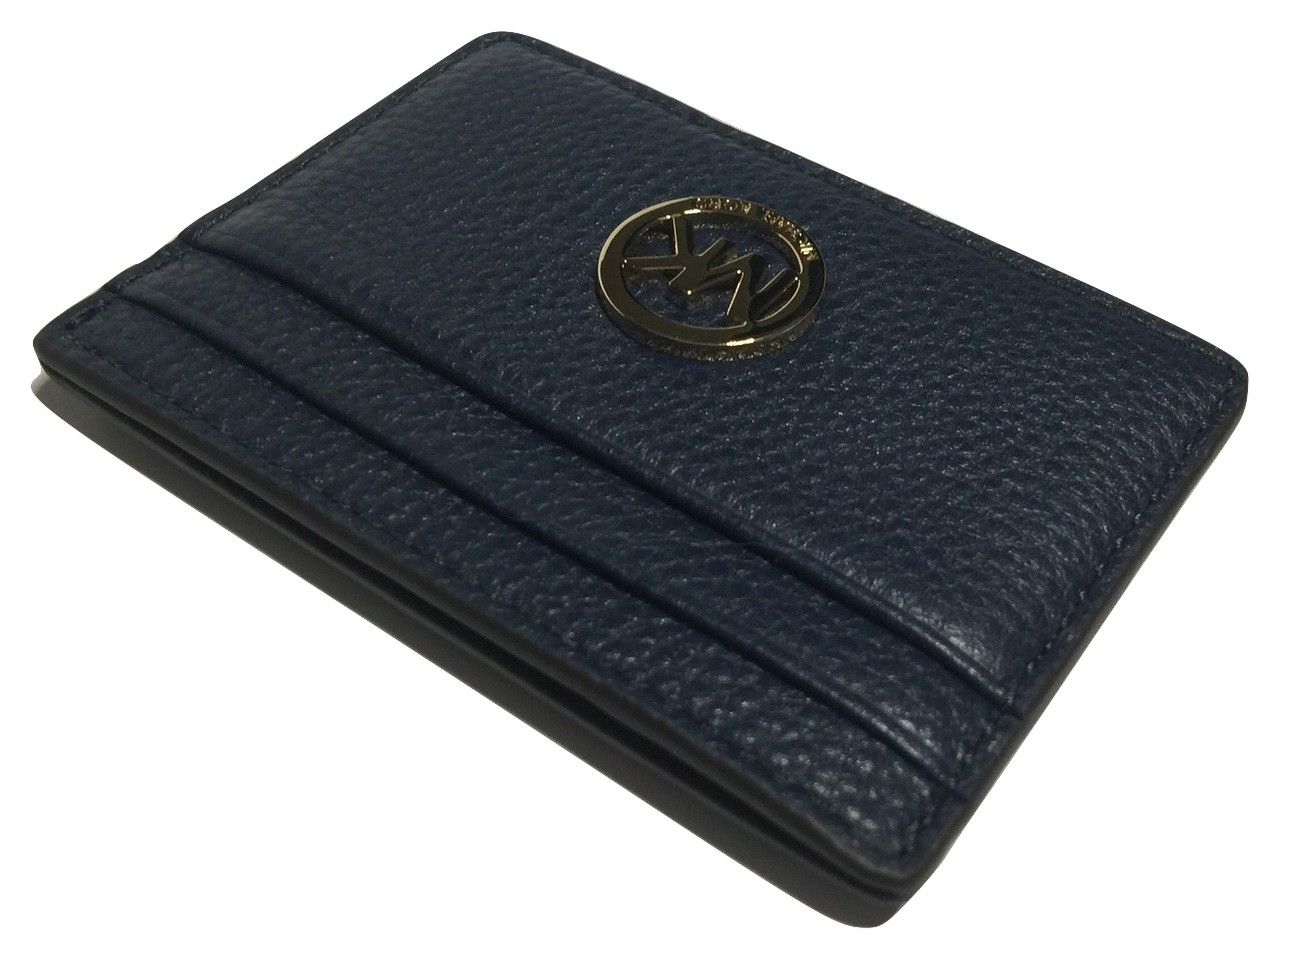 94f2d8c4bc55 Get the lowest price on Michael Kors Navy Blue Credit Card Case Holder and  other fabulous designer clothing and accessories! Shop Tradesy now